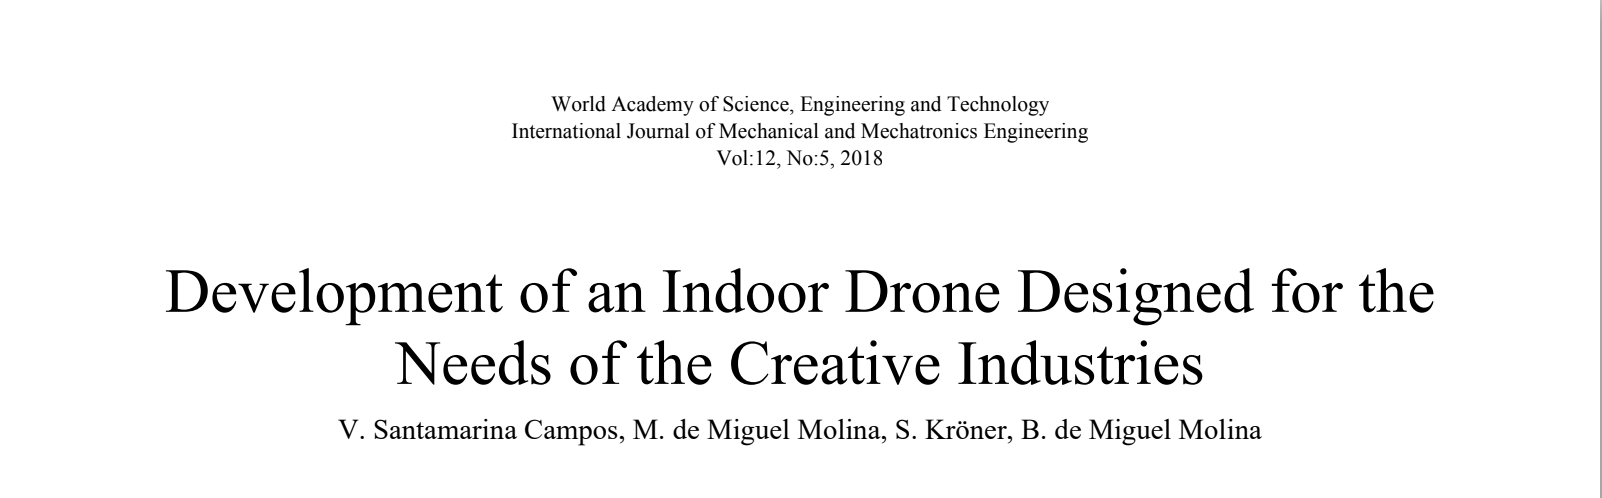 AiRT project in International Journal of Mechanical and Mechatronics Engineering